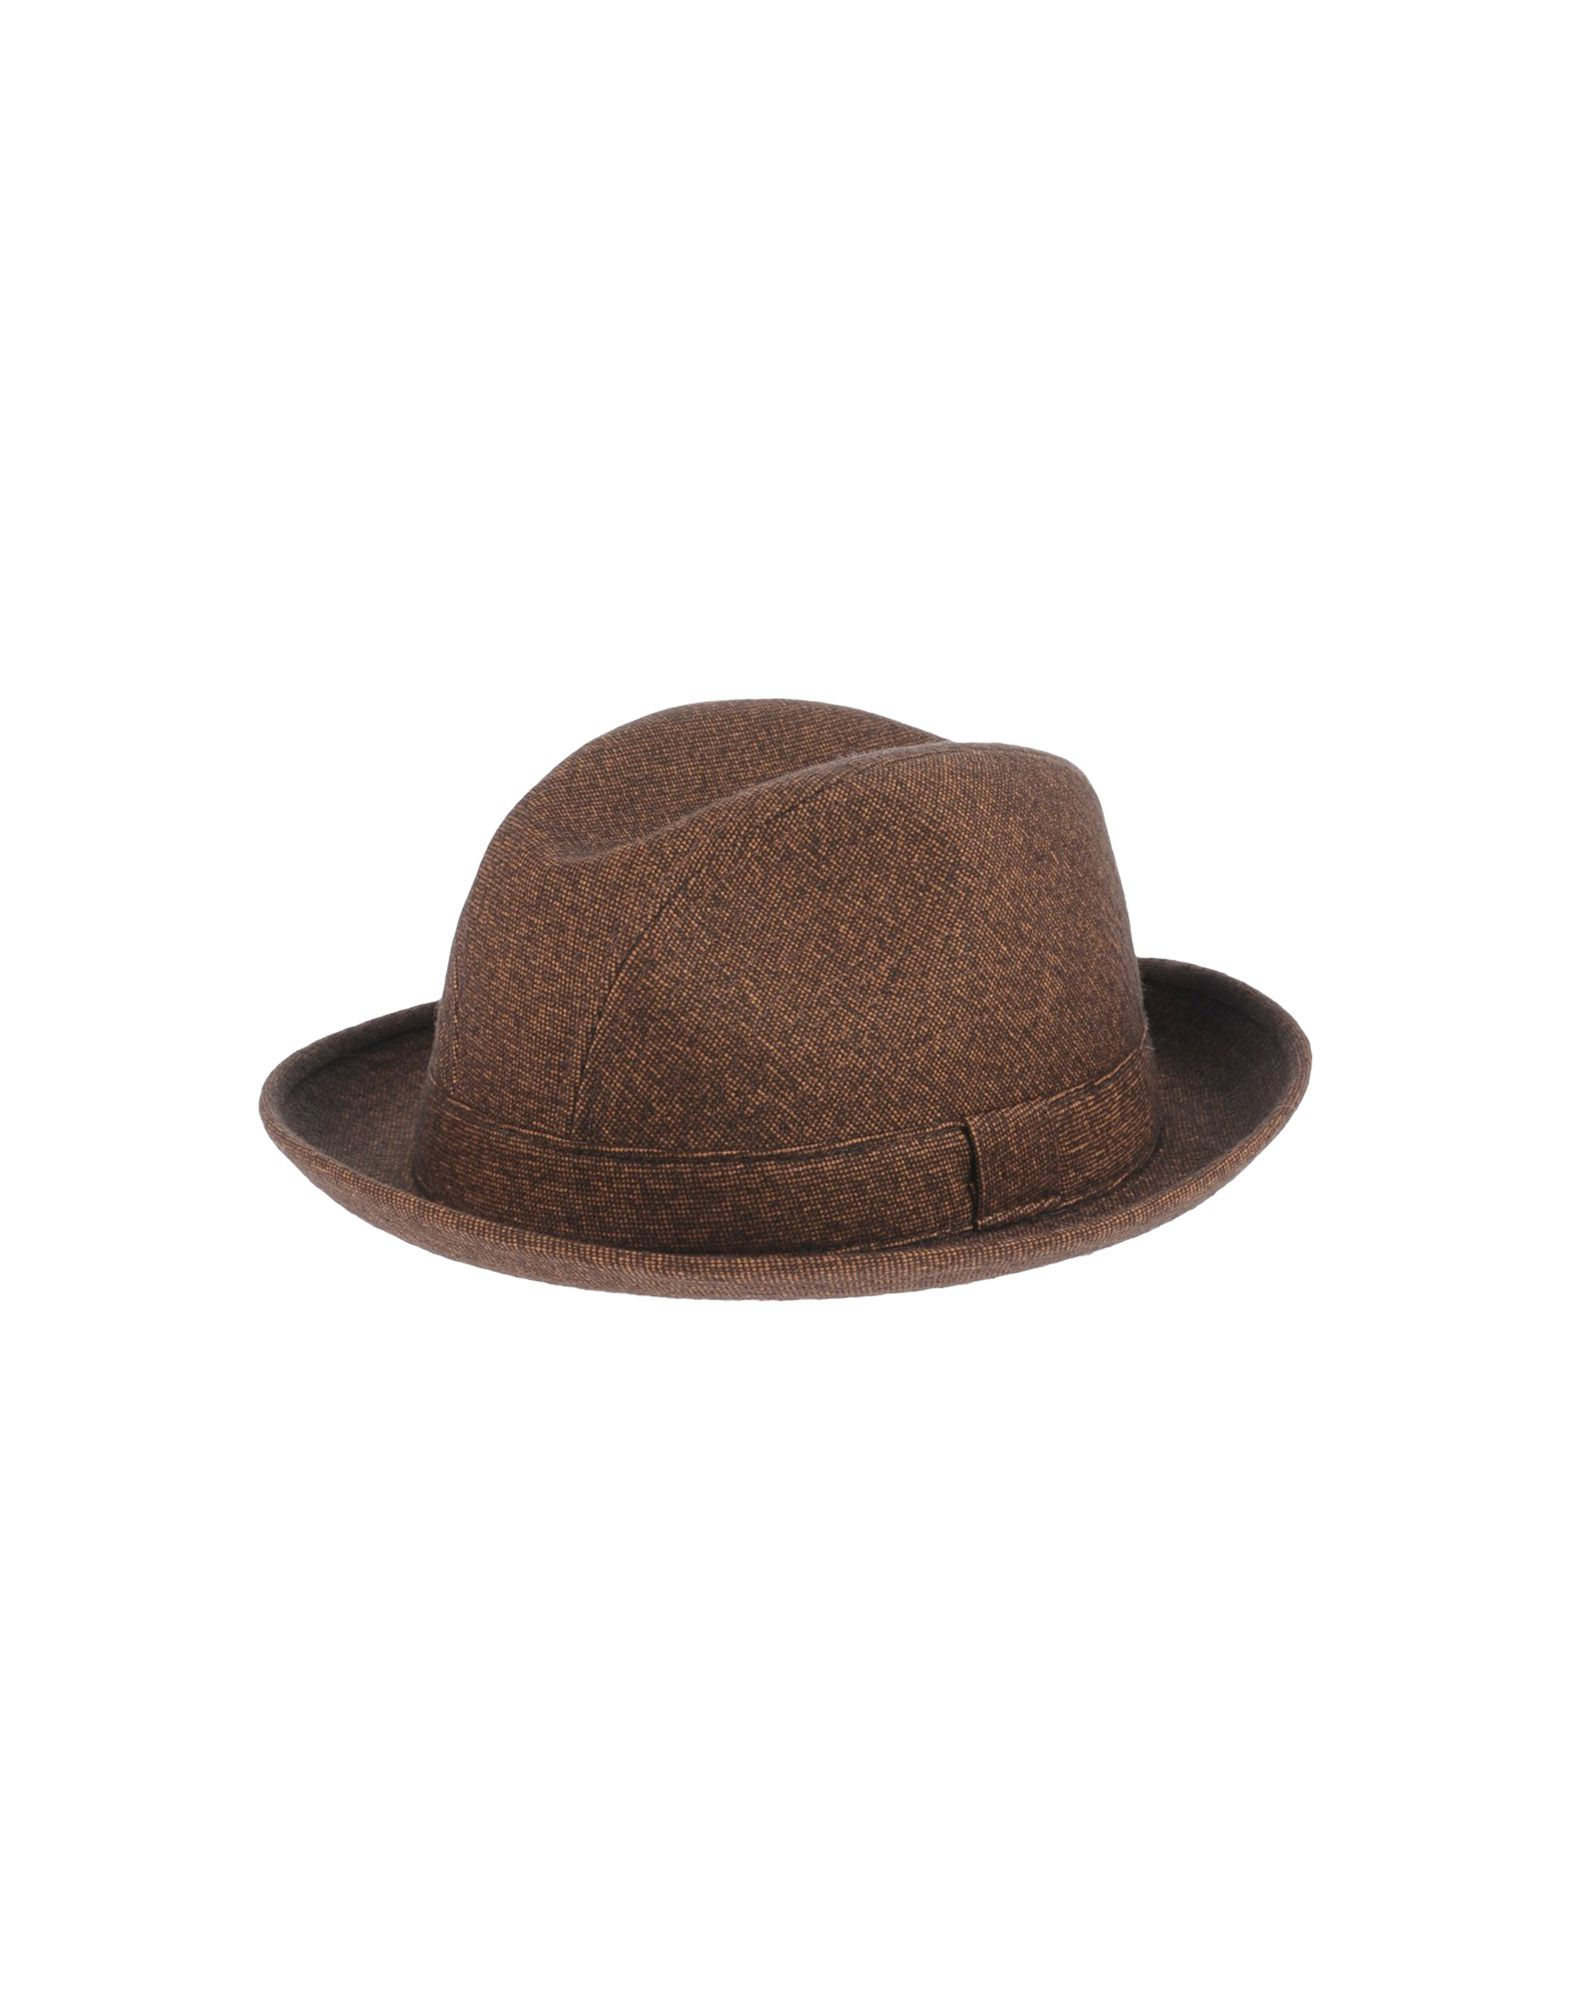 BARBISIO Hat in Brown